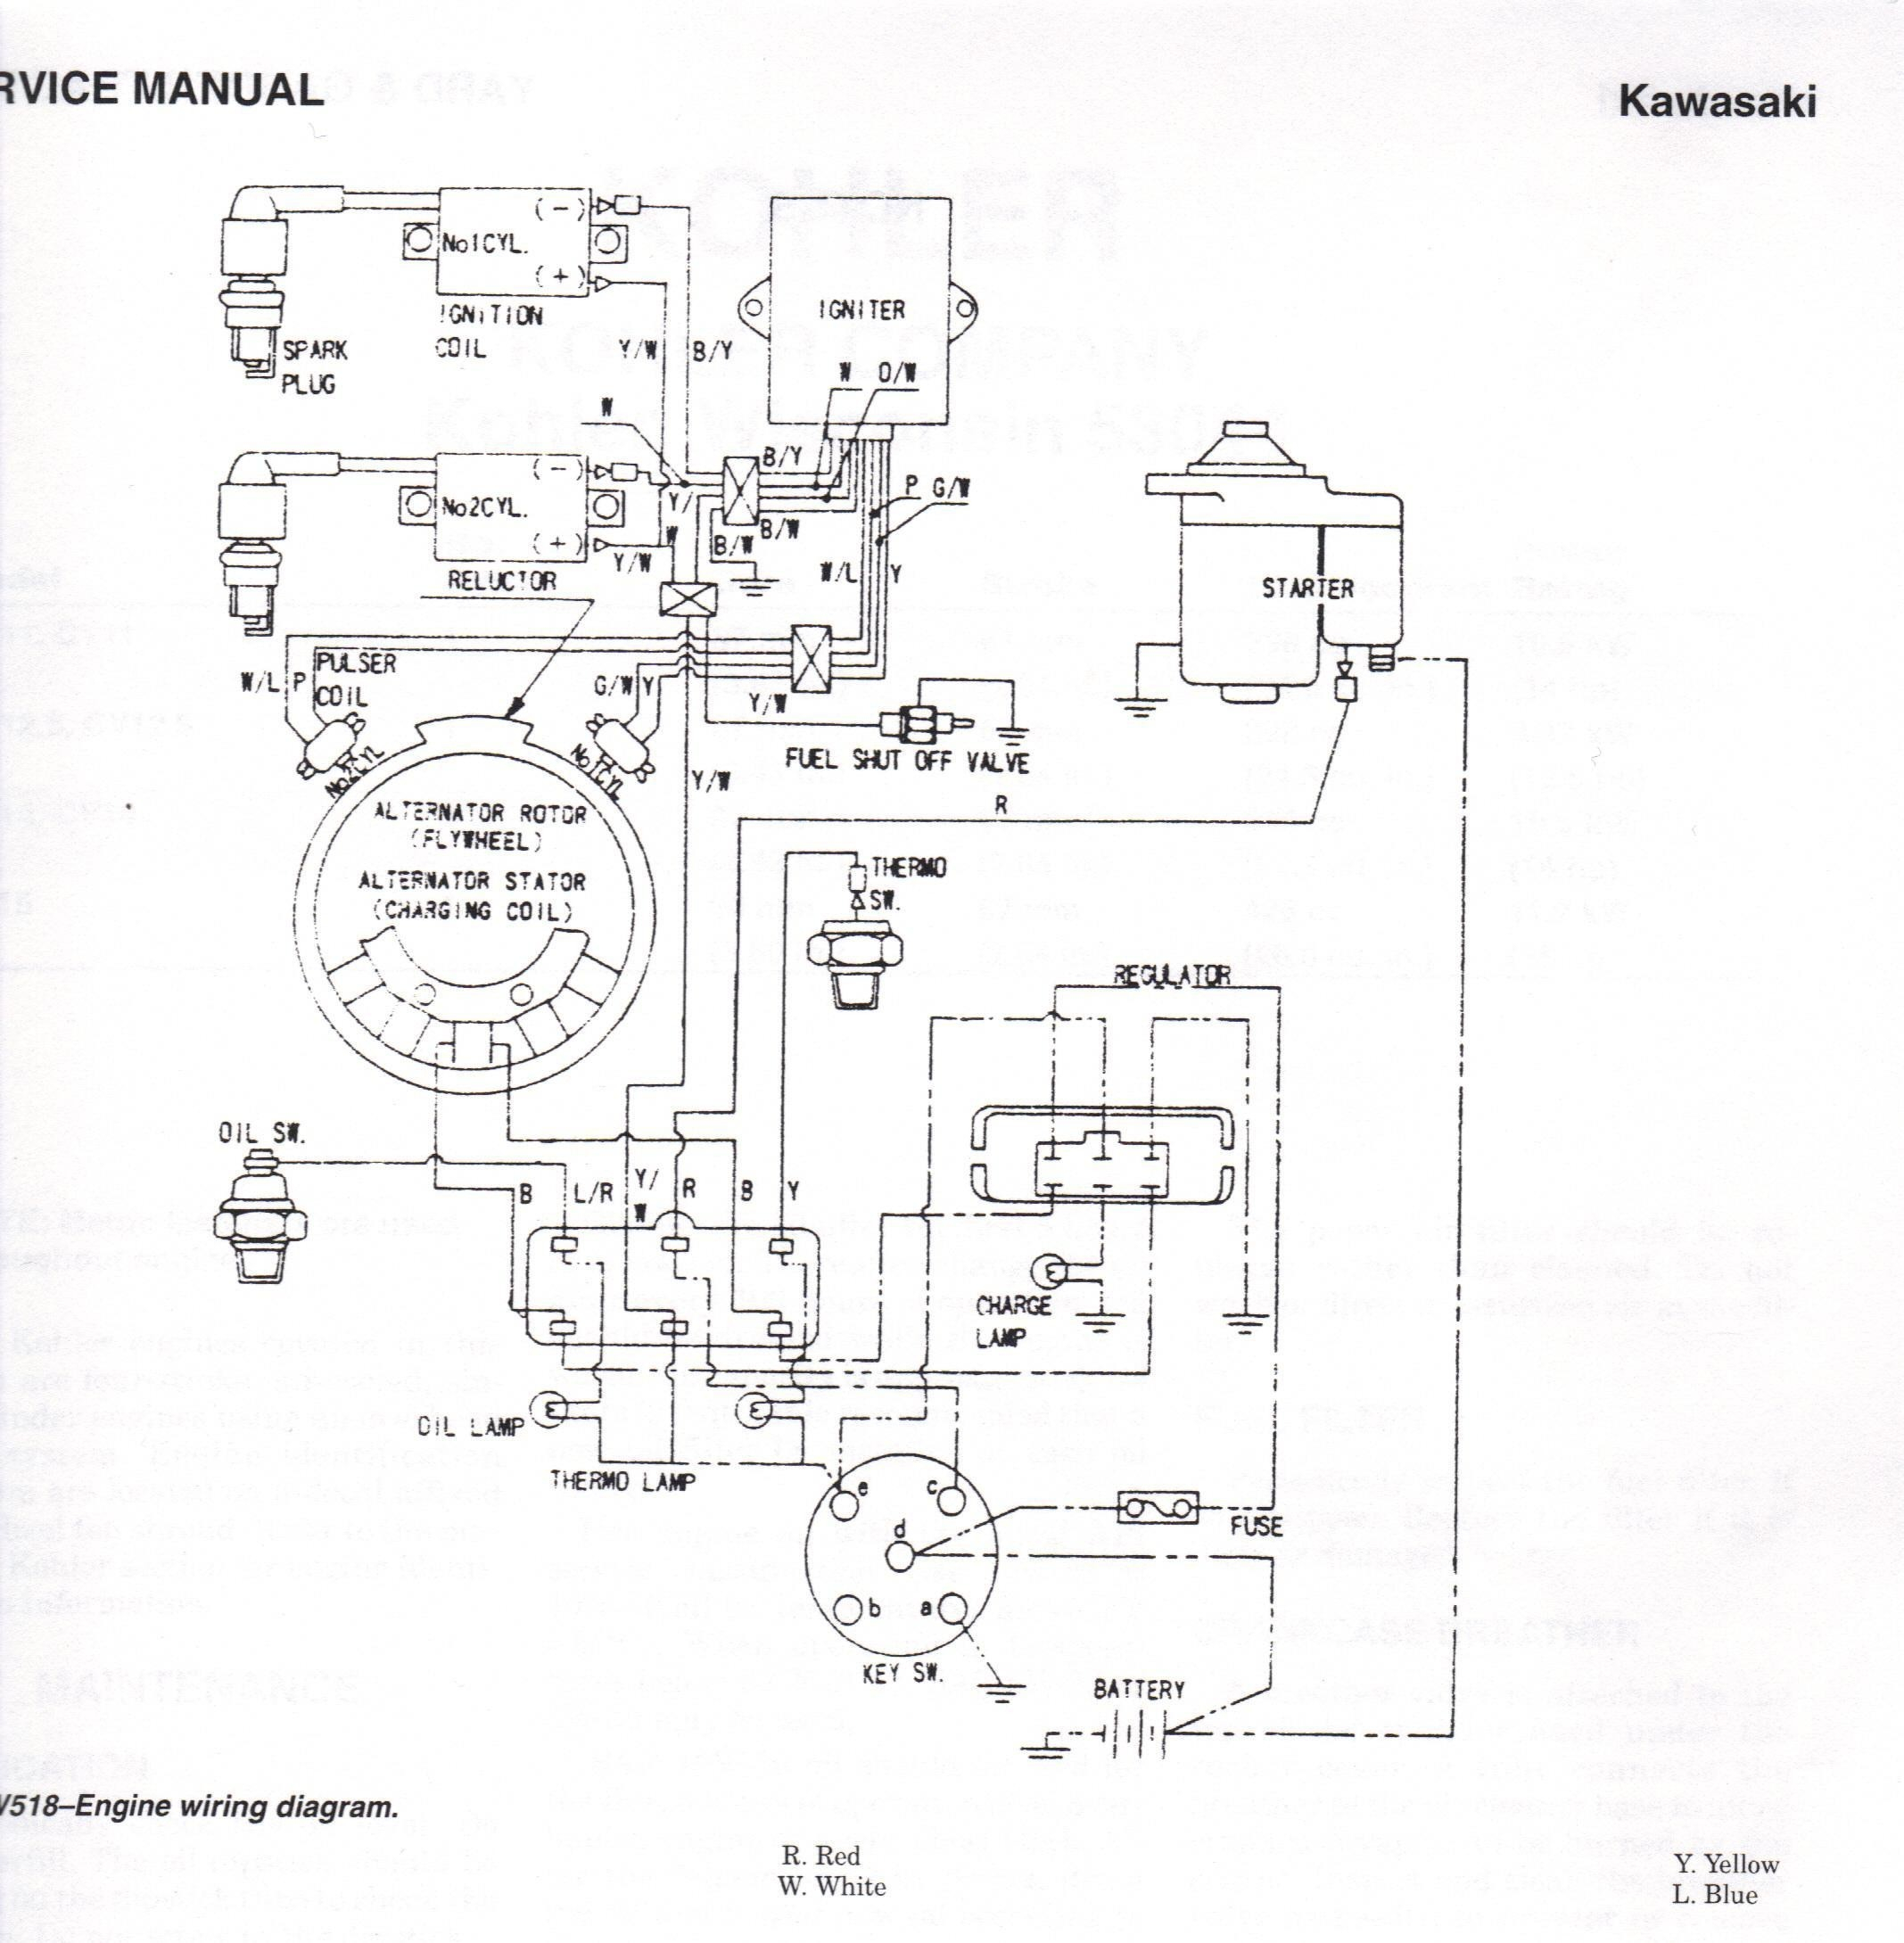 John Deere Gator Wiring Diagram Collection